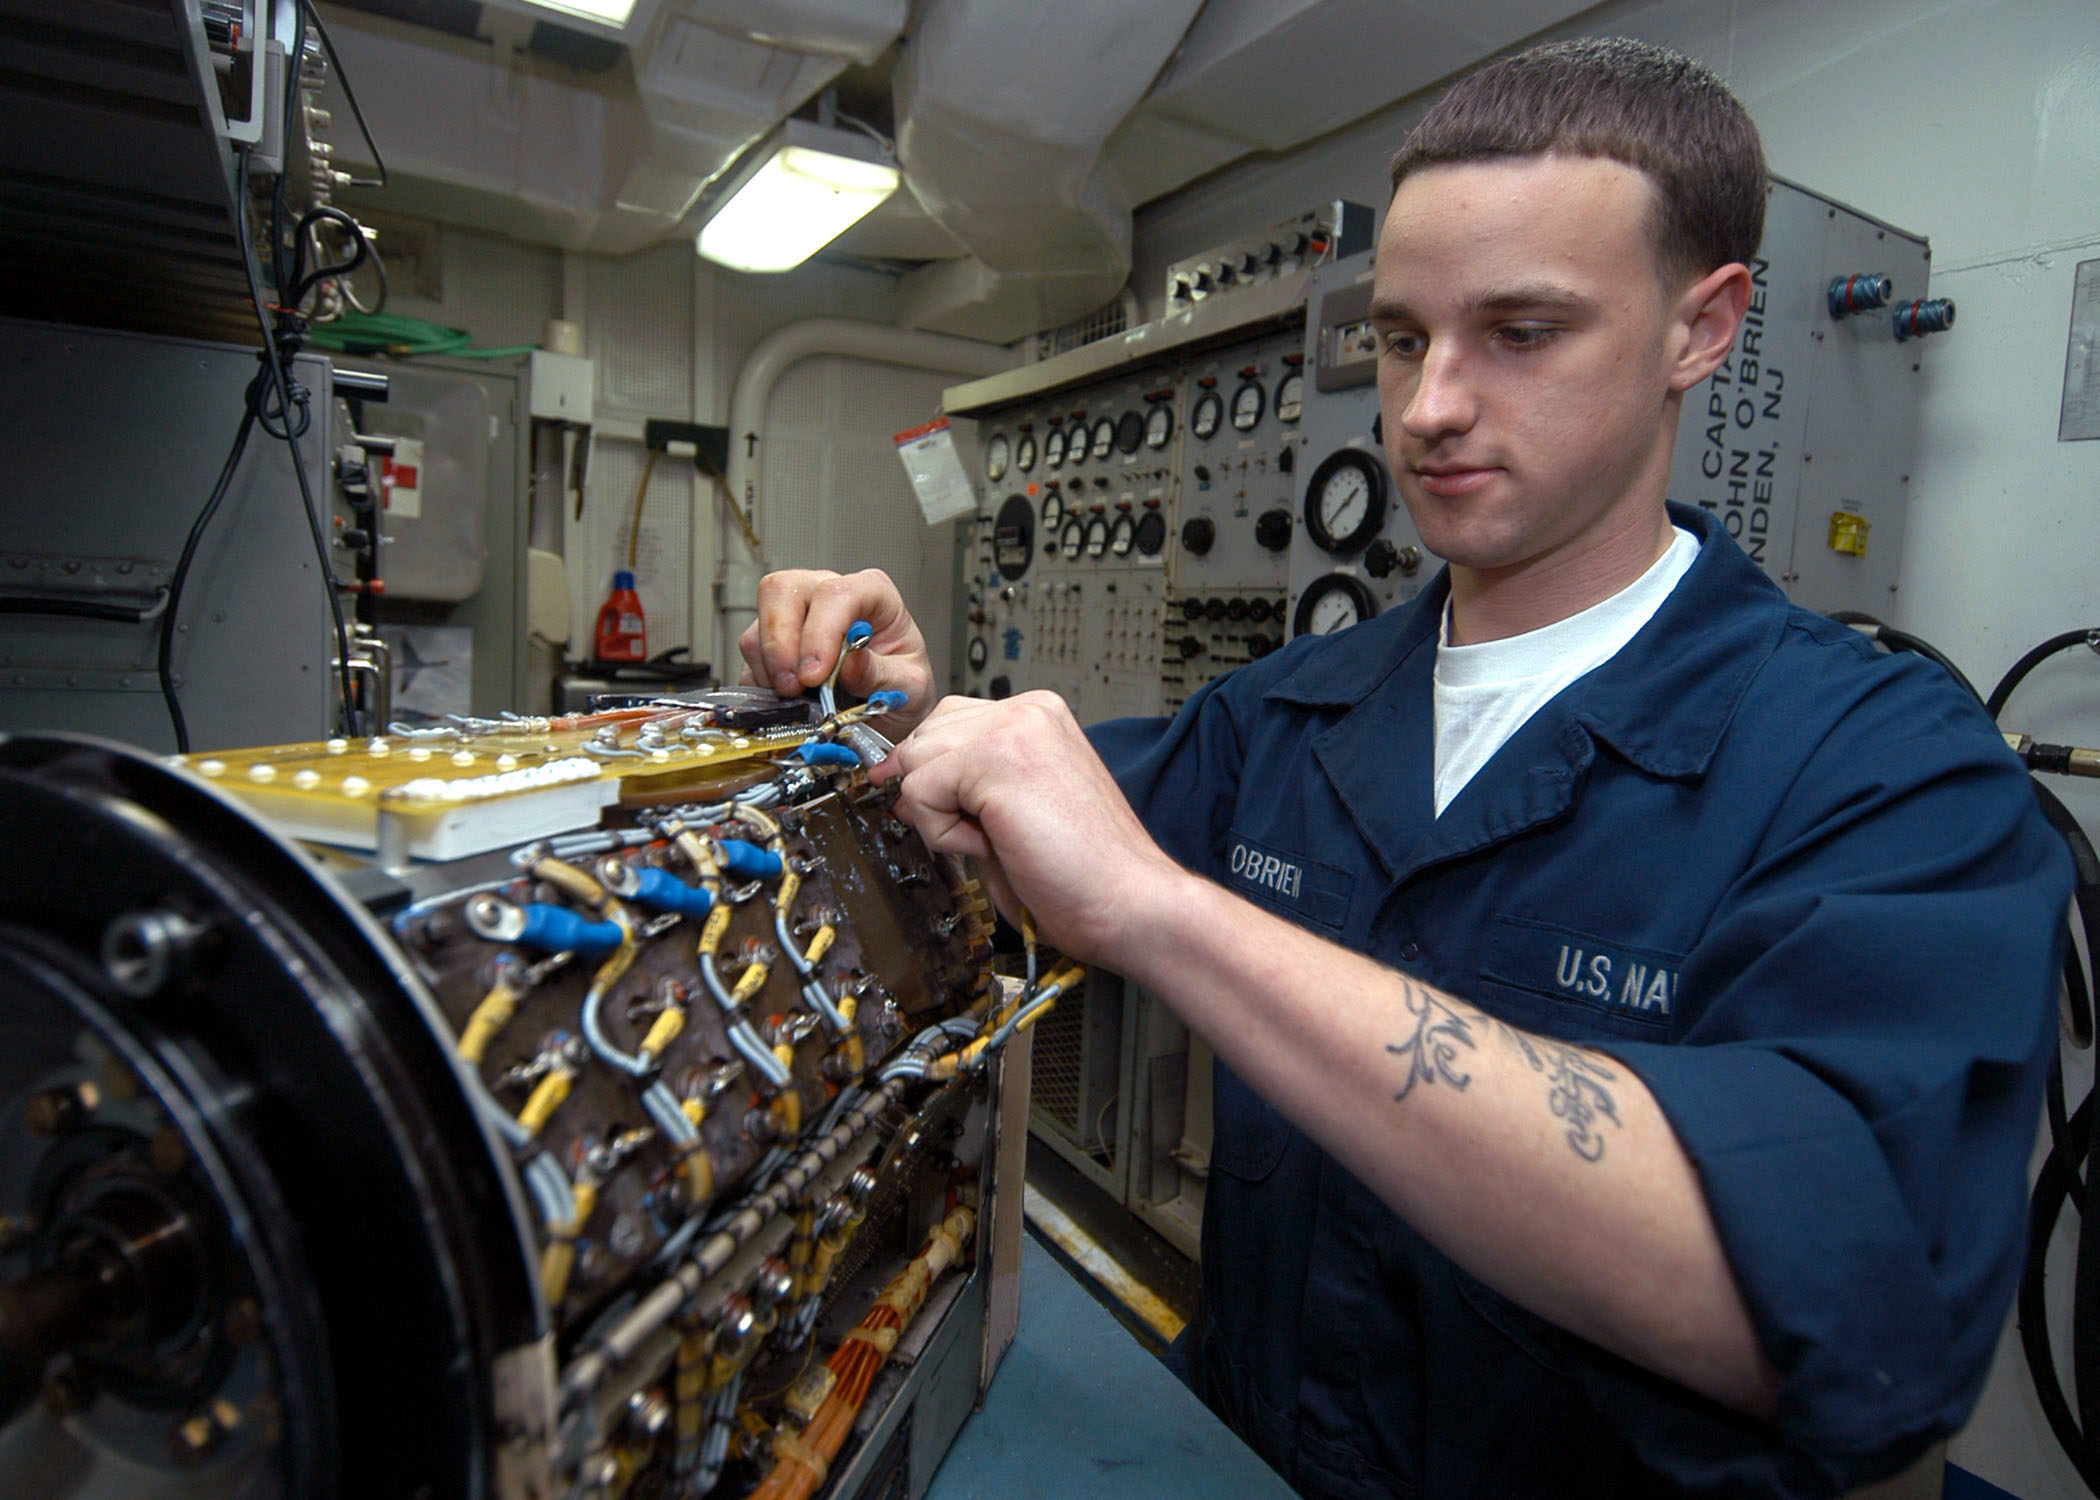 File:US Navy 040104-N-7090S-001 While conducting maintenance ...